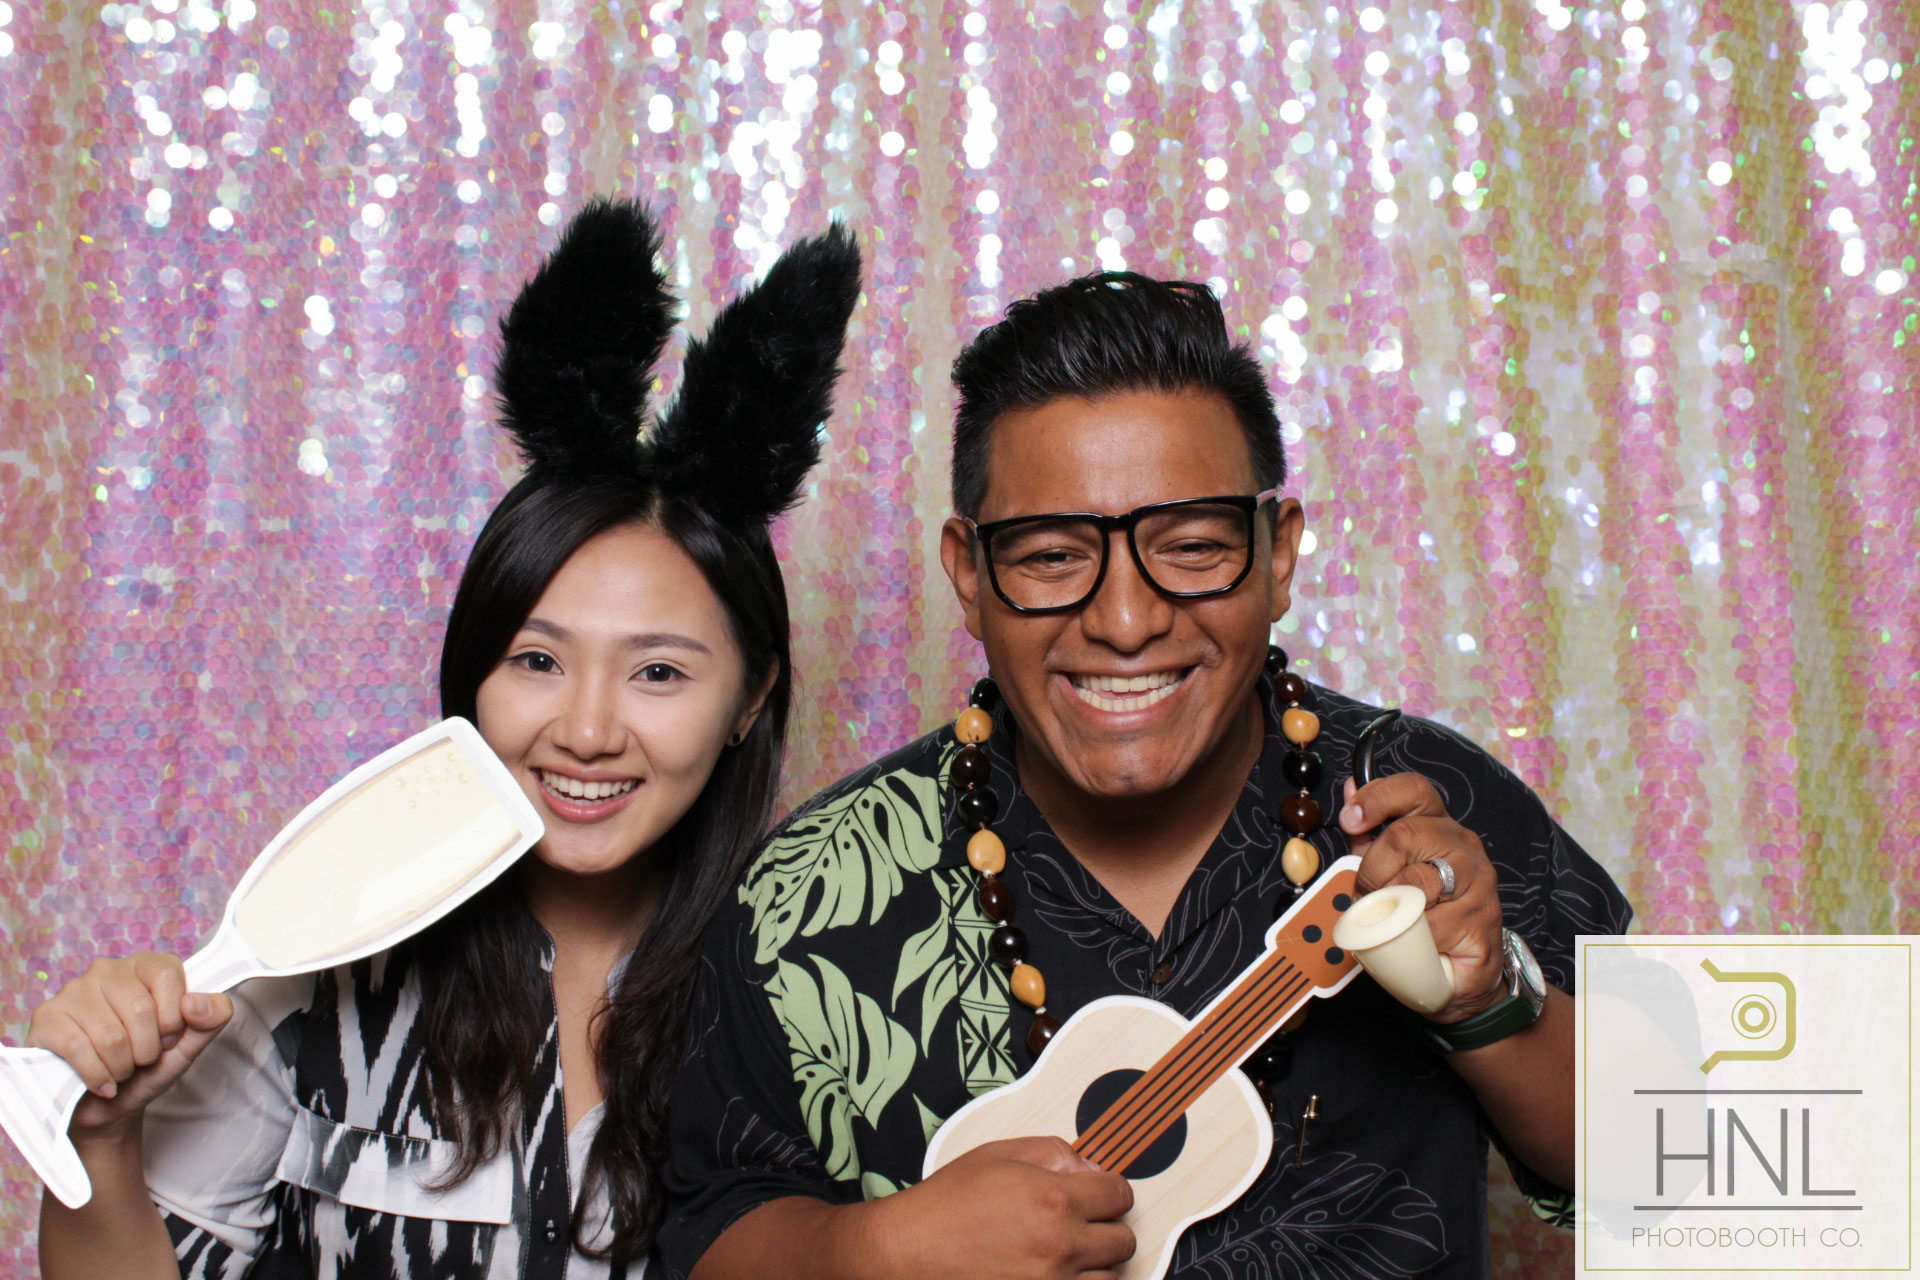 Yemi and Yang Wedding Photo booth Hiltion Hawaiian Village Resort Waikiki Oahu Hawaii -203.jpg